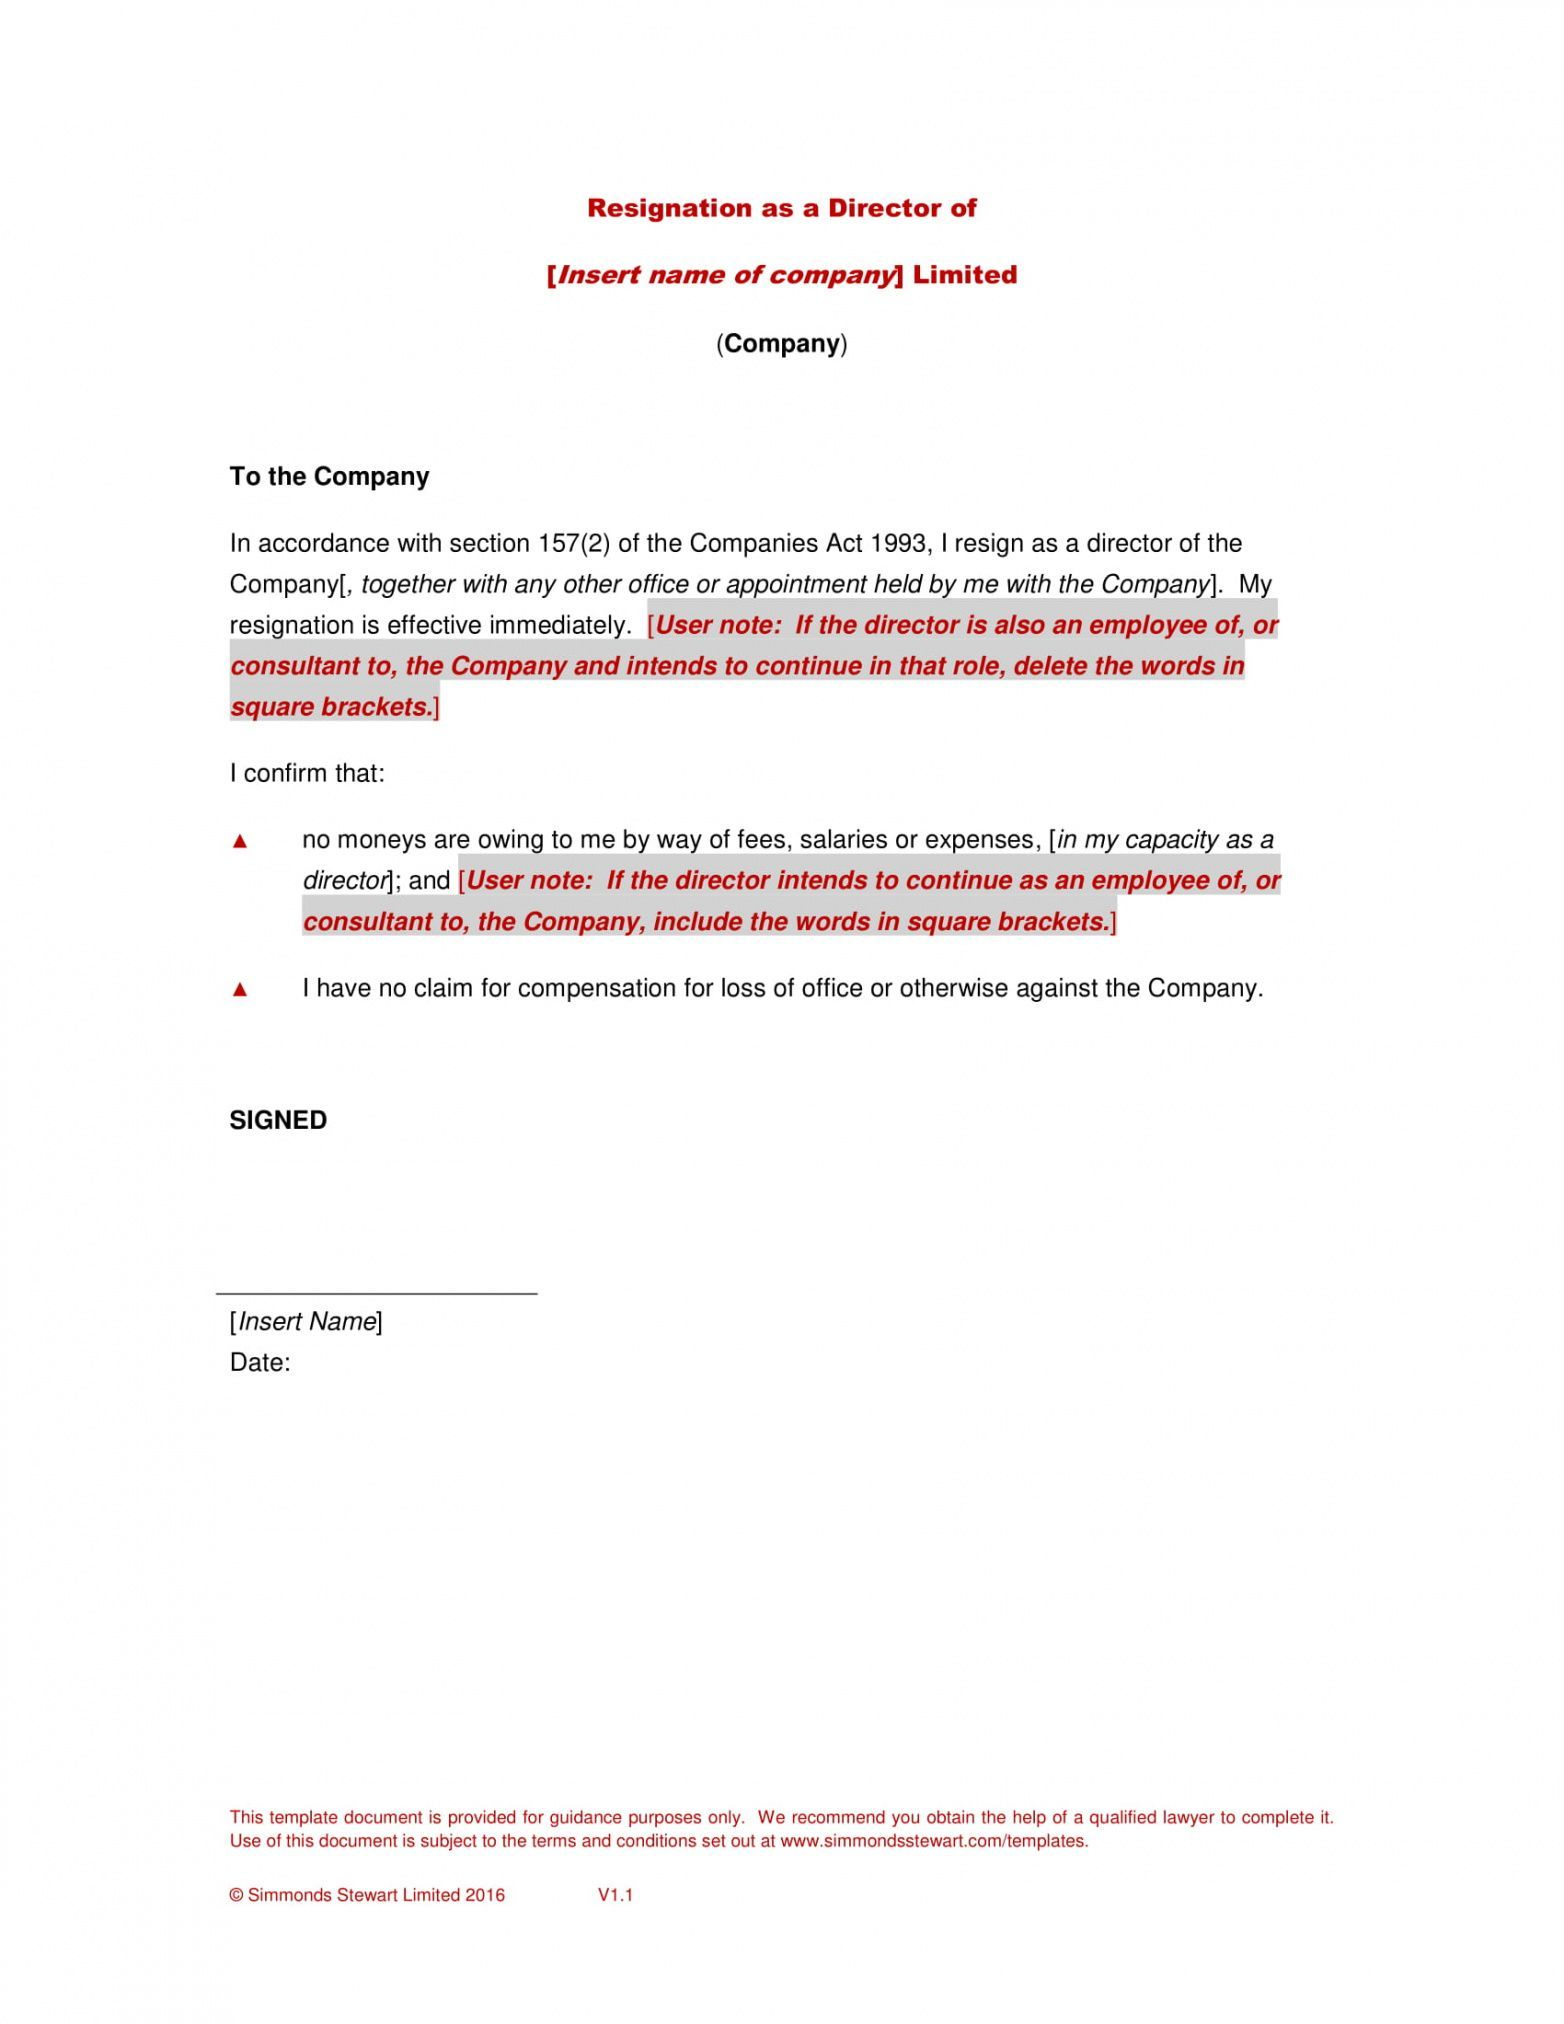 Browse Our Example Of Board Member Resignation Letter Template For Free Resignation Letter Sample Resignation Letter Resignation Letter Template